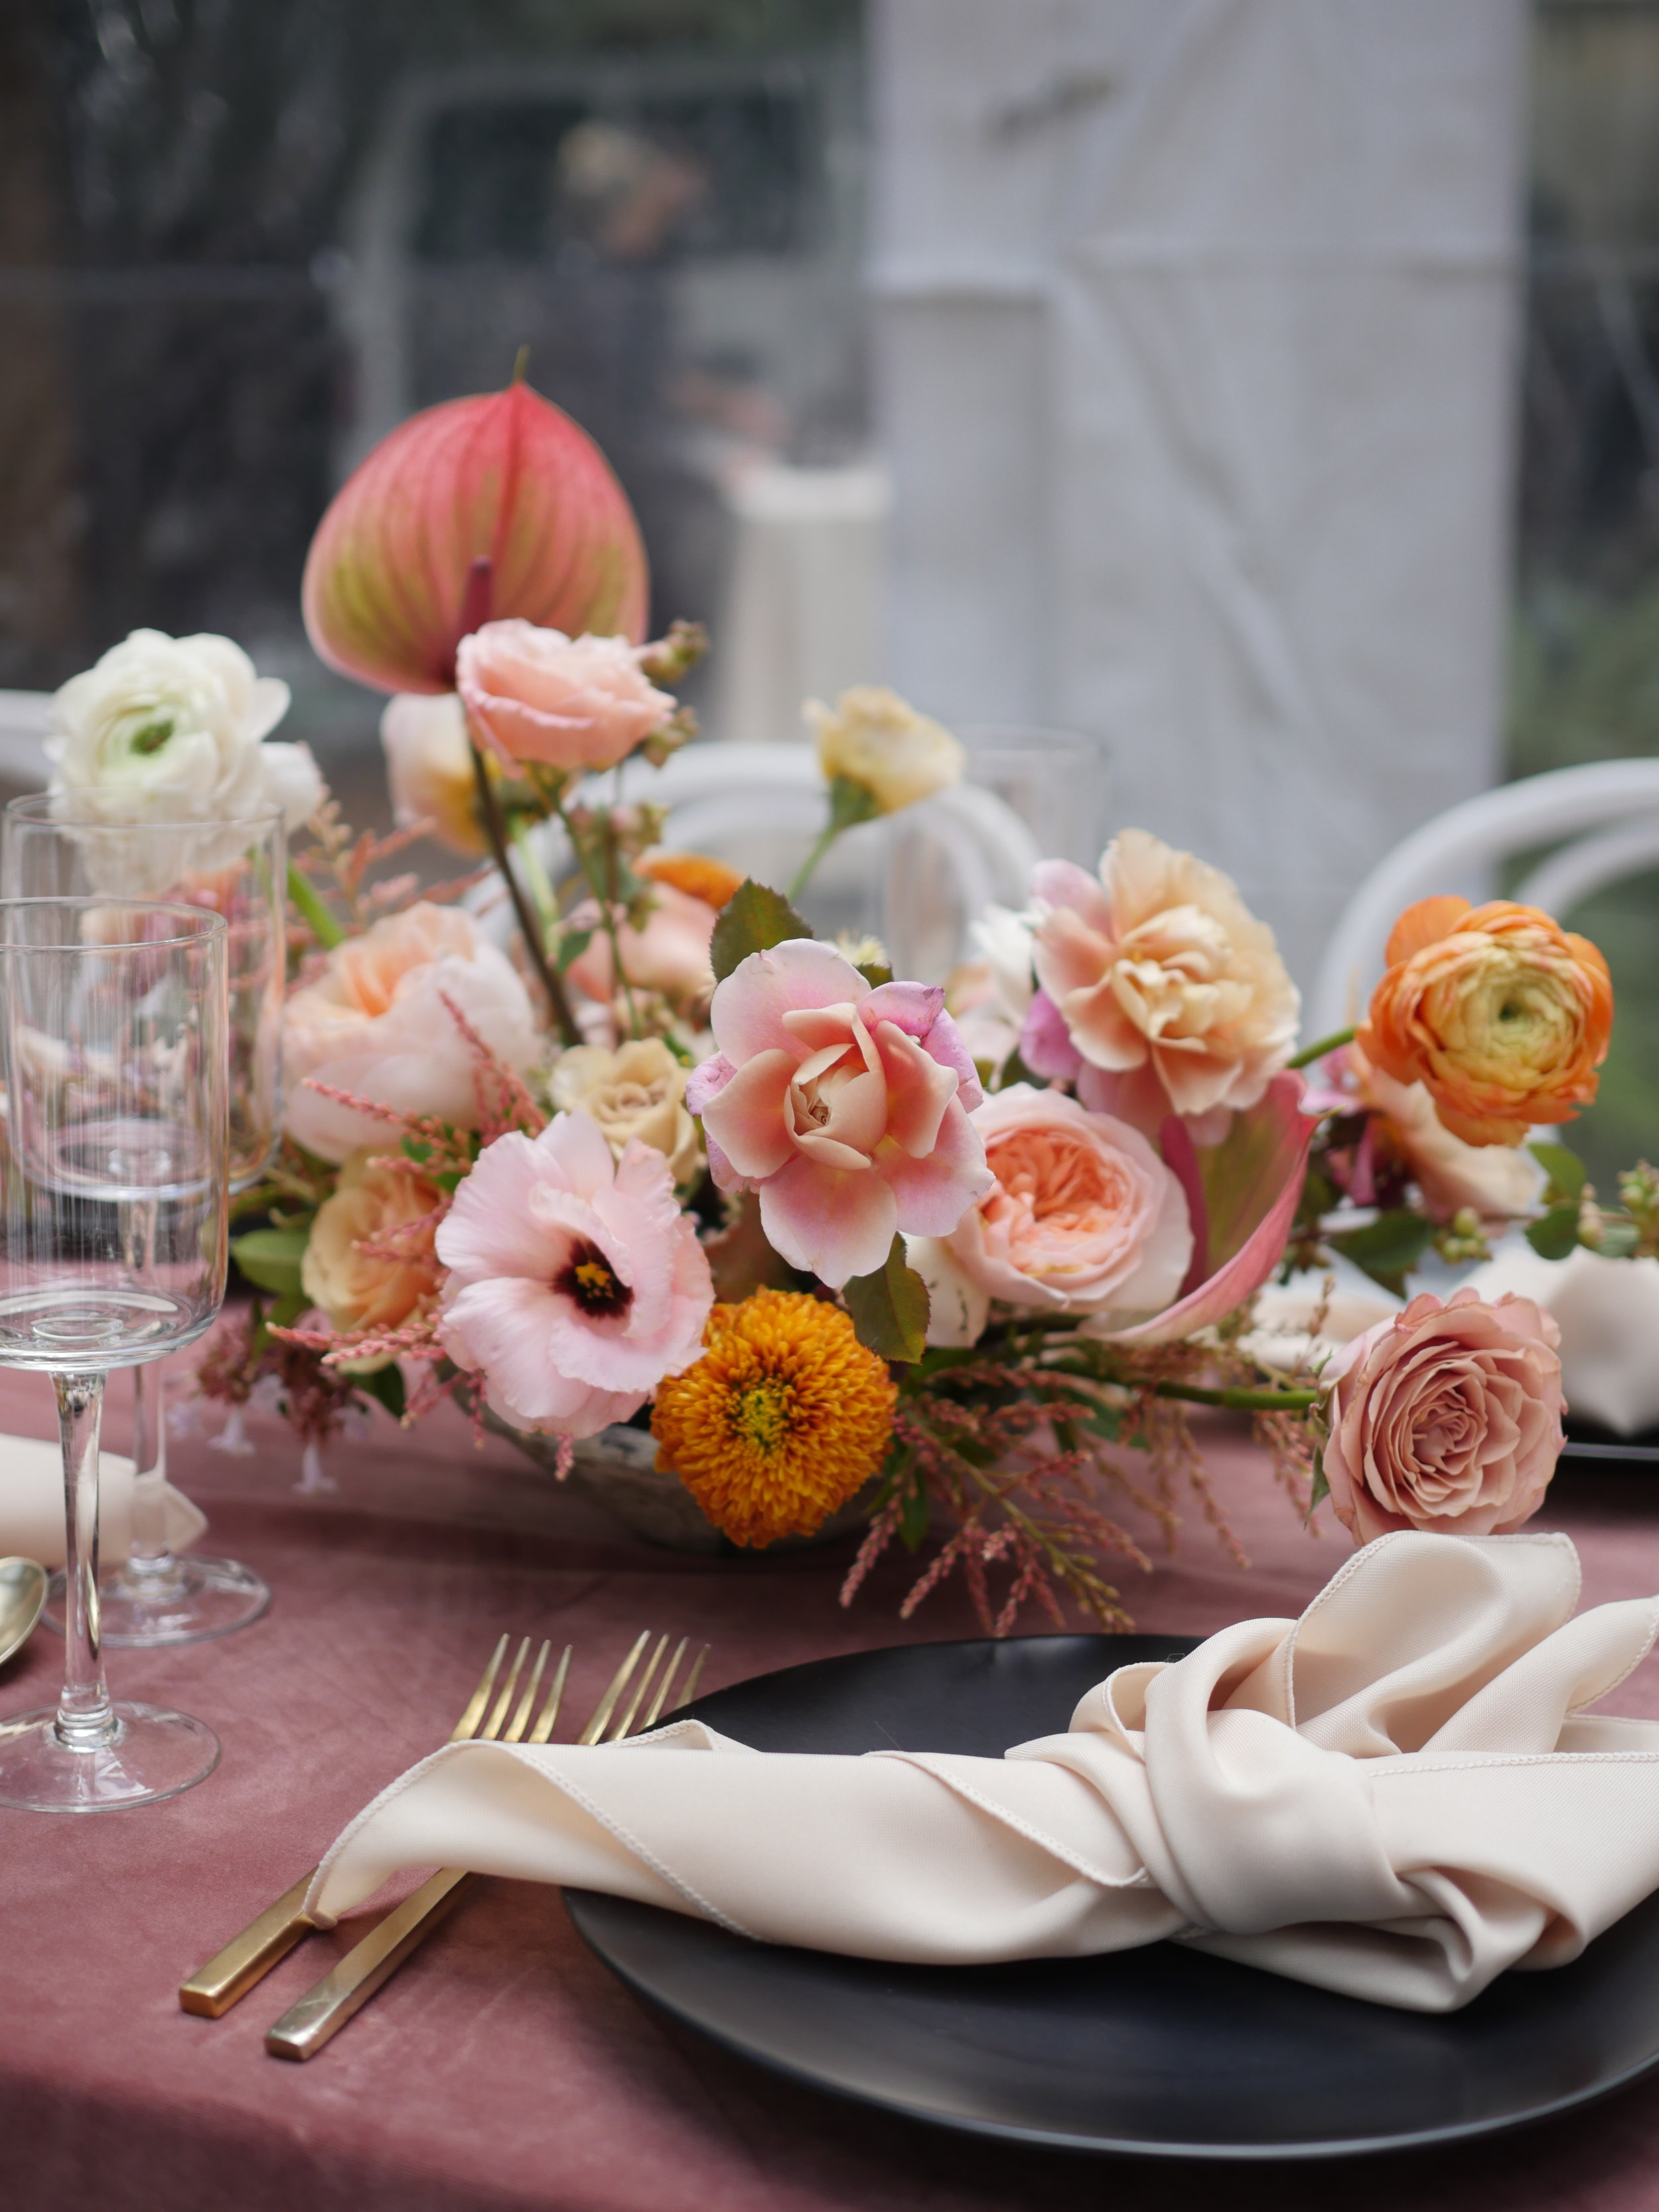 Flowers designed by wedding florist Color Theory Collective